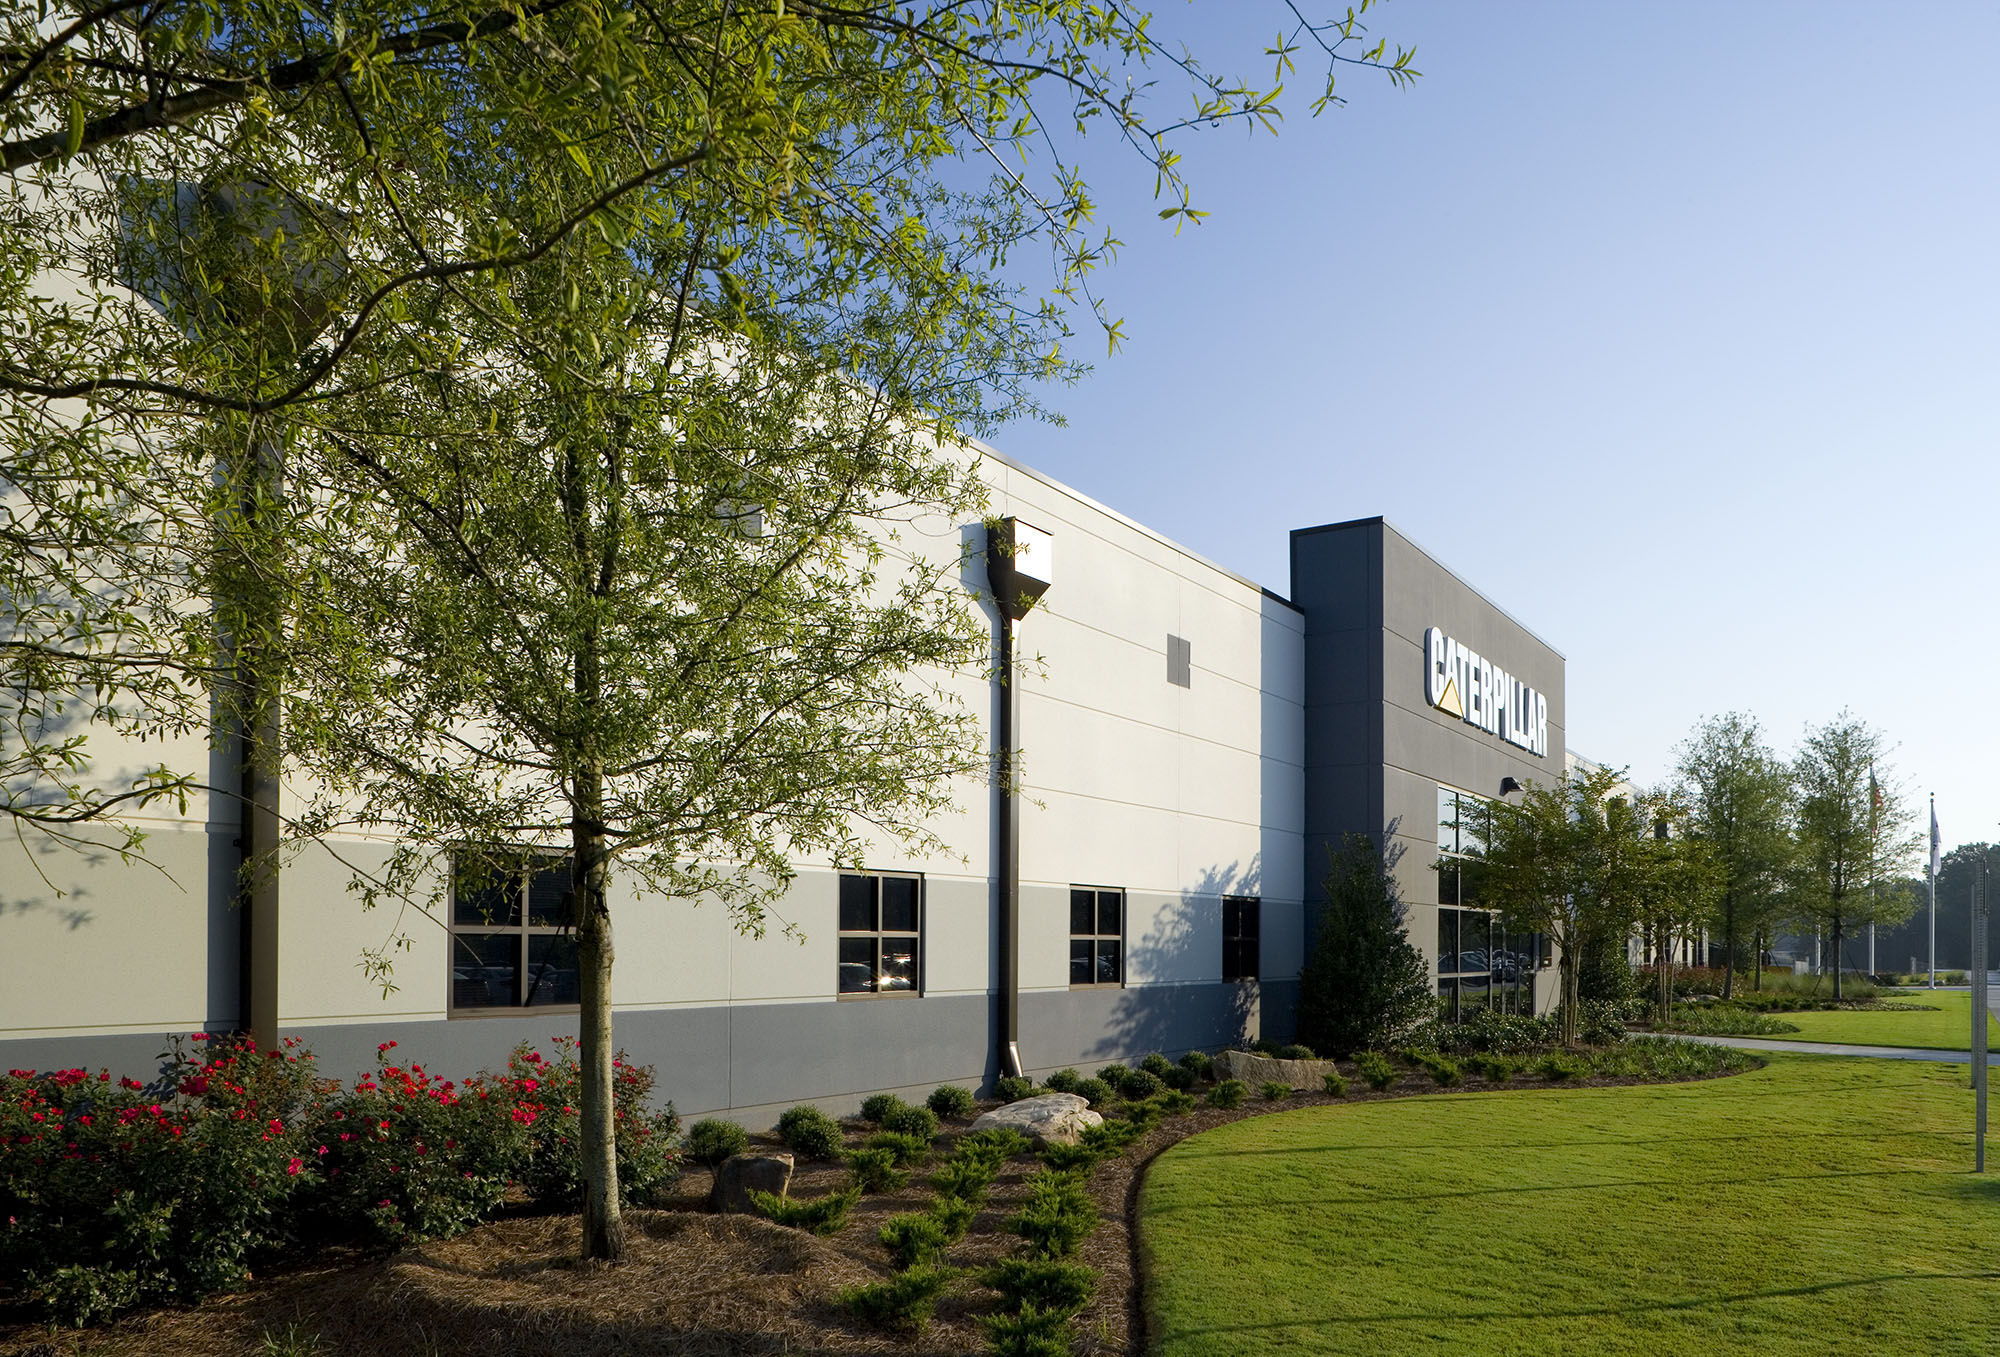 Landscape design and entrance to Caterpillar Manufacturing facility